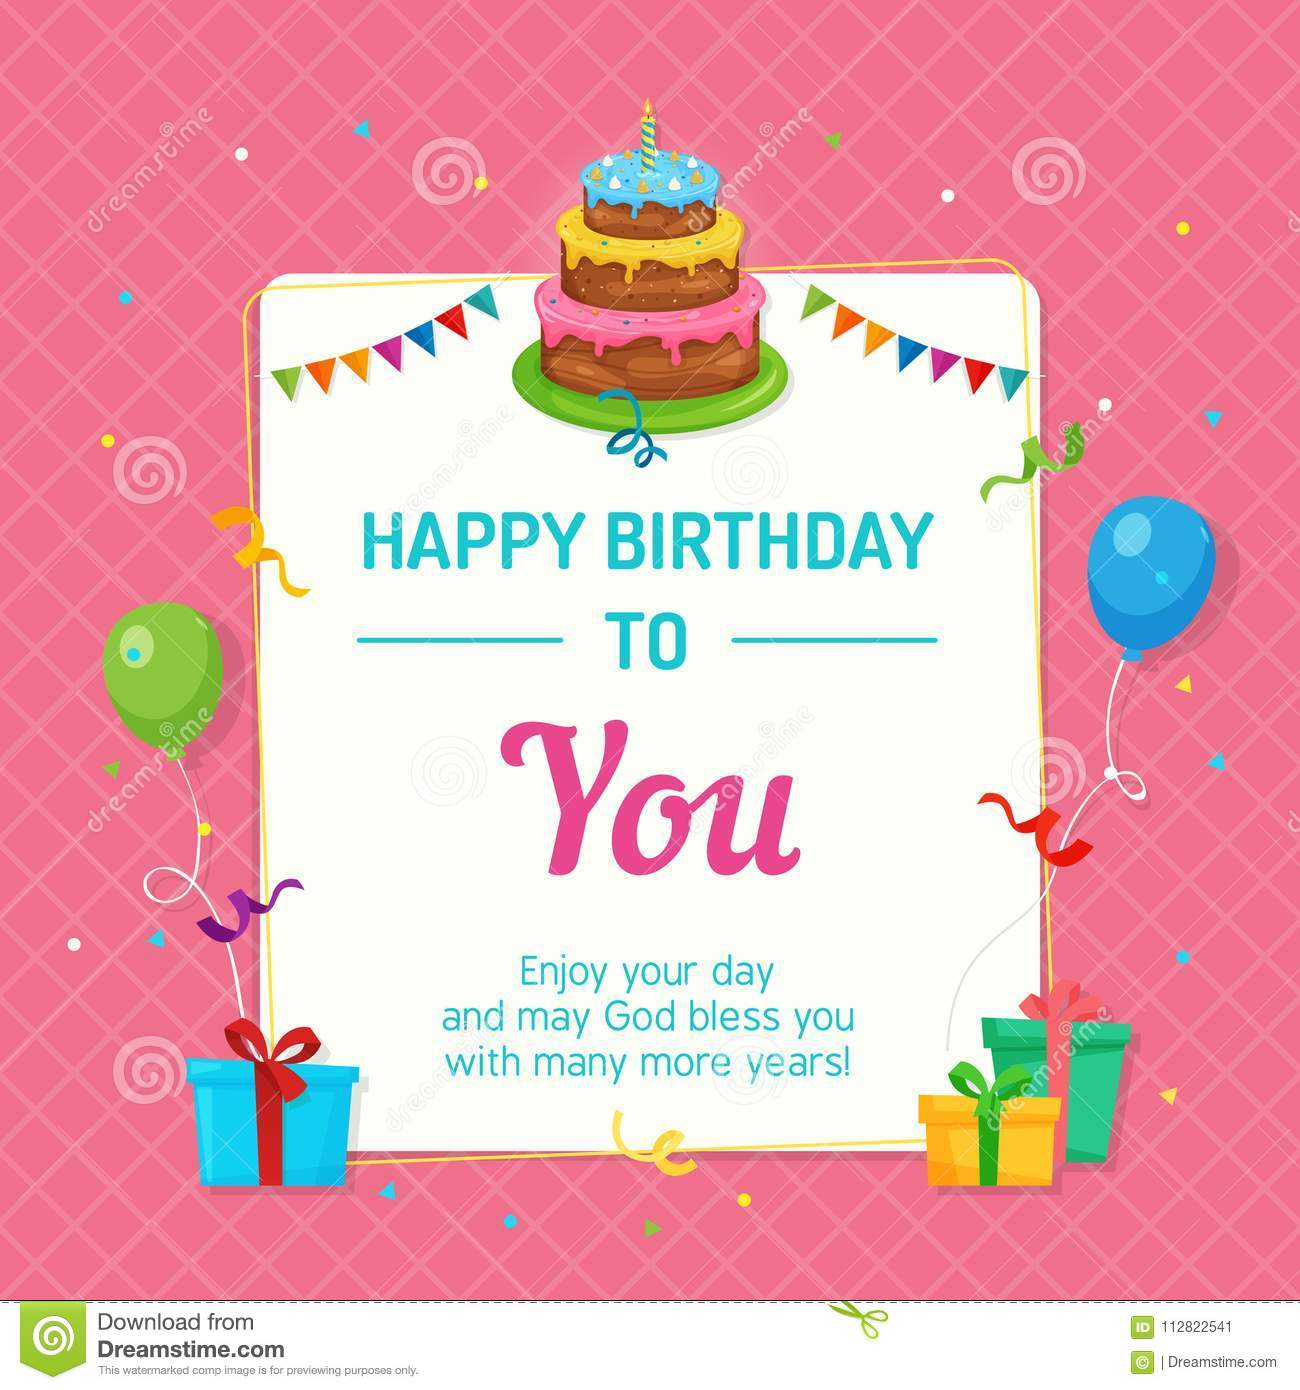 Happy Birthday Invitation Card Template With Birthday Cake And Party